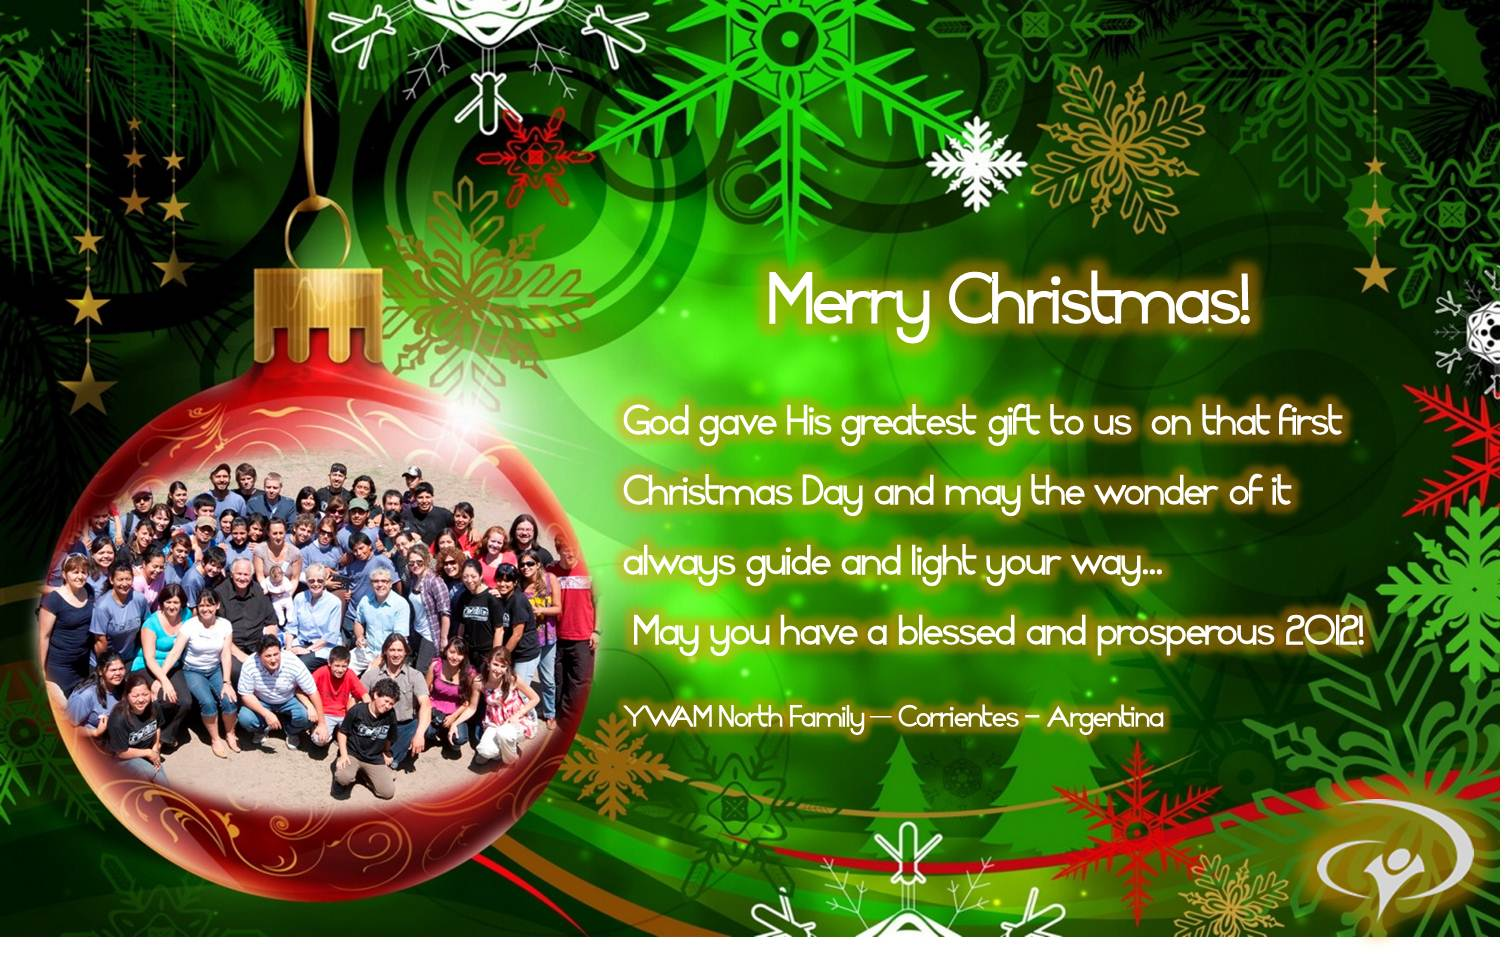 Christmas special greetings demirediffusion christmas special greetings m4hsunfo